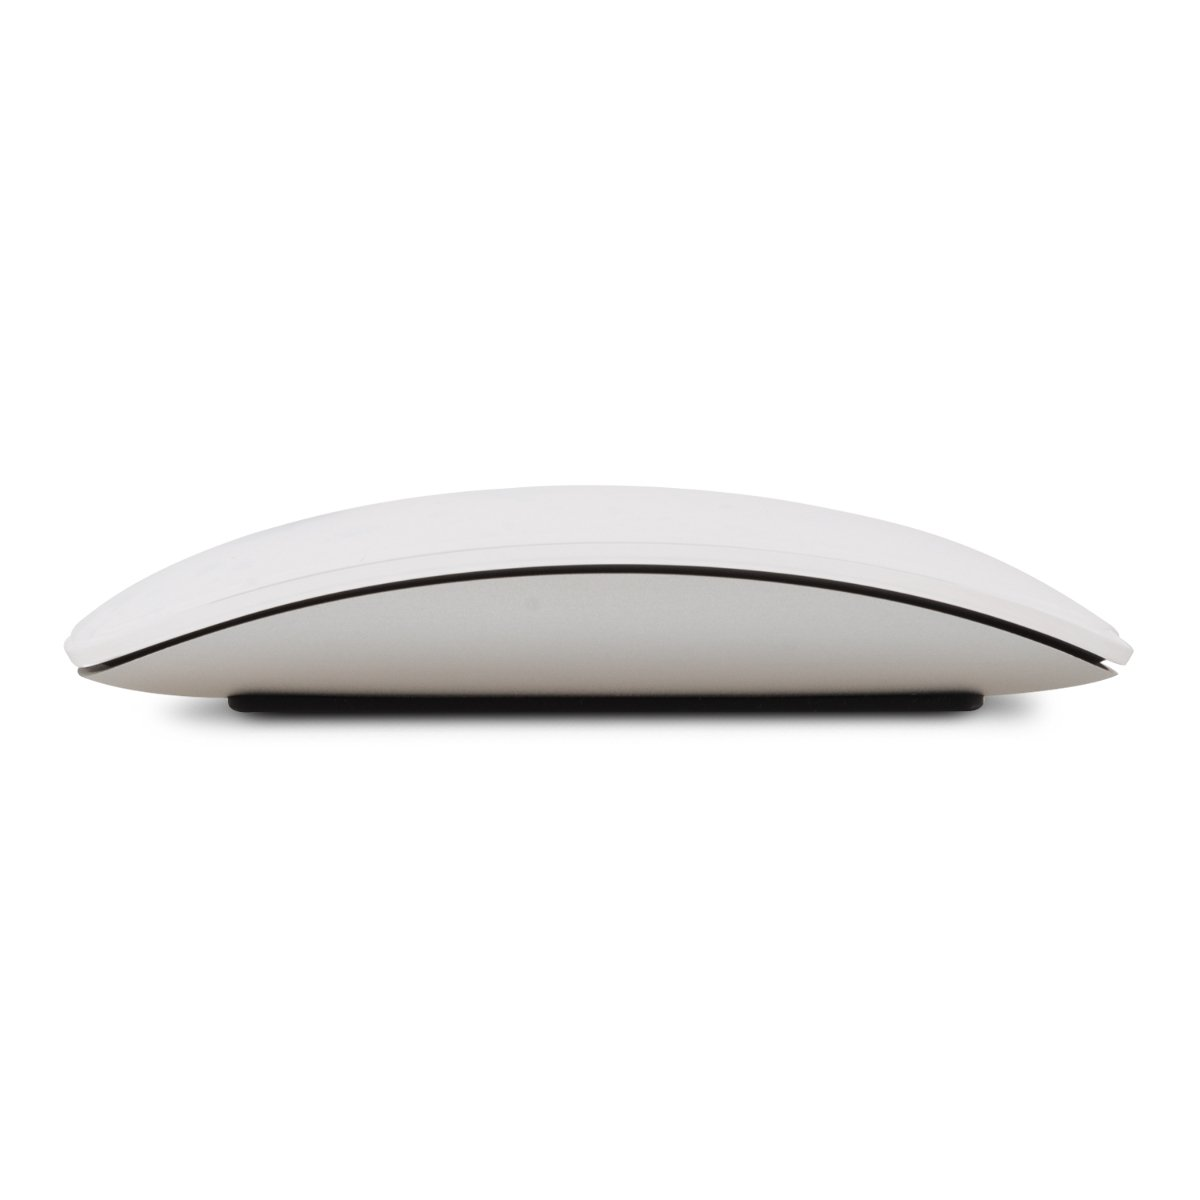 Matt kwmobile Protector Film for Apple Magic Mouse 1//2 Silicone Soft Skin Protective Film Cover Mouse Guard Durable Non-Slip Transparent